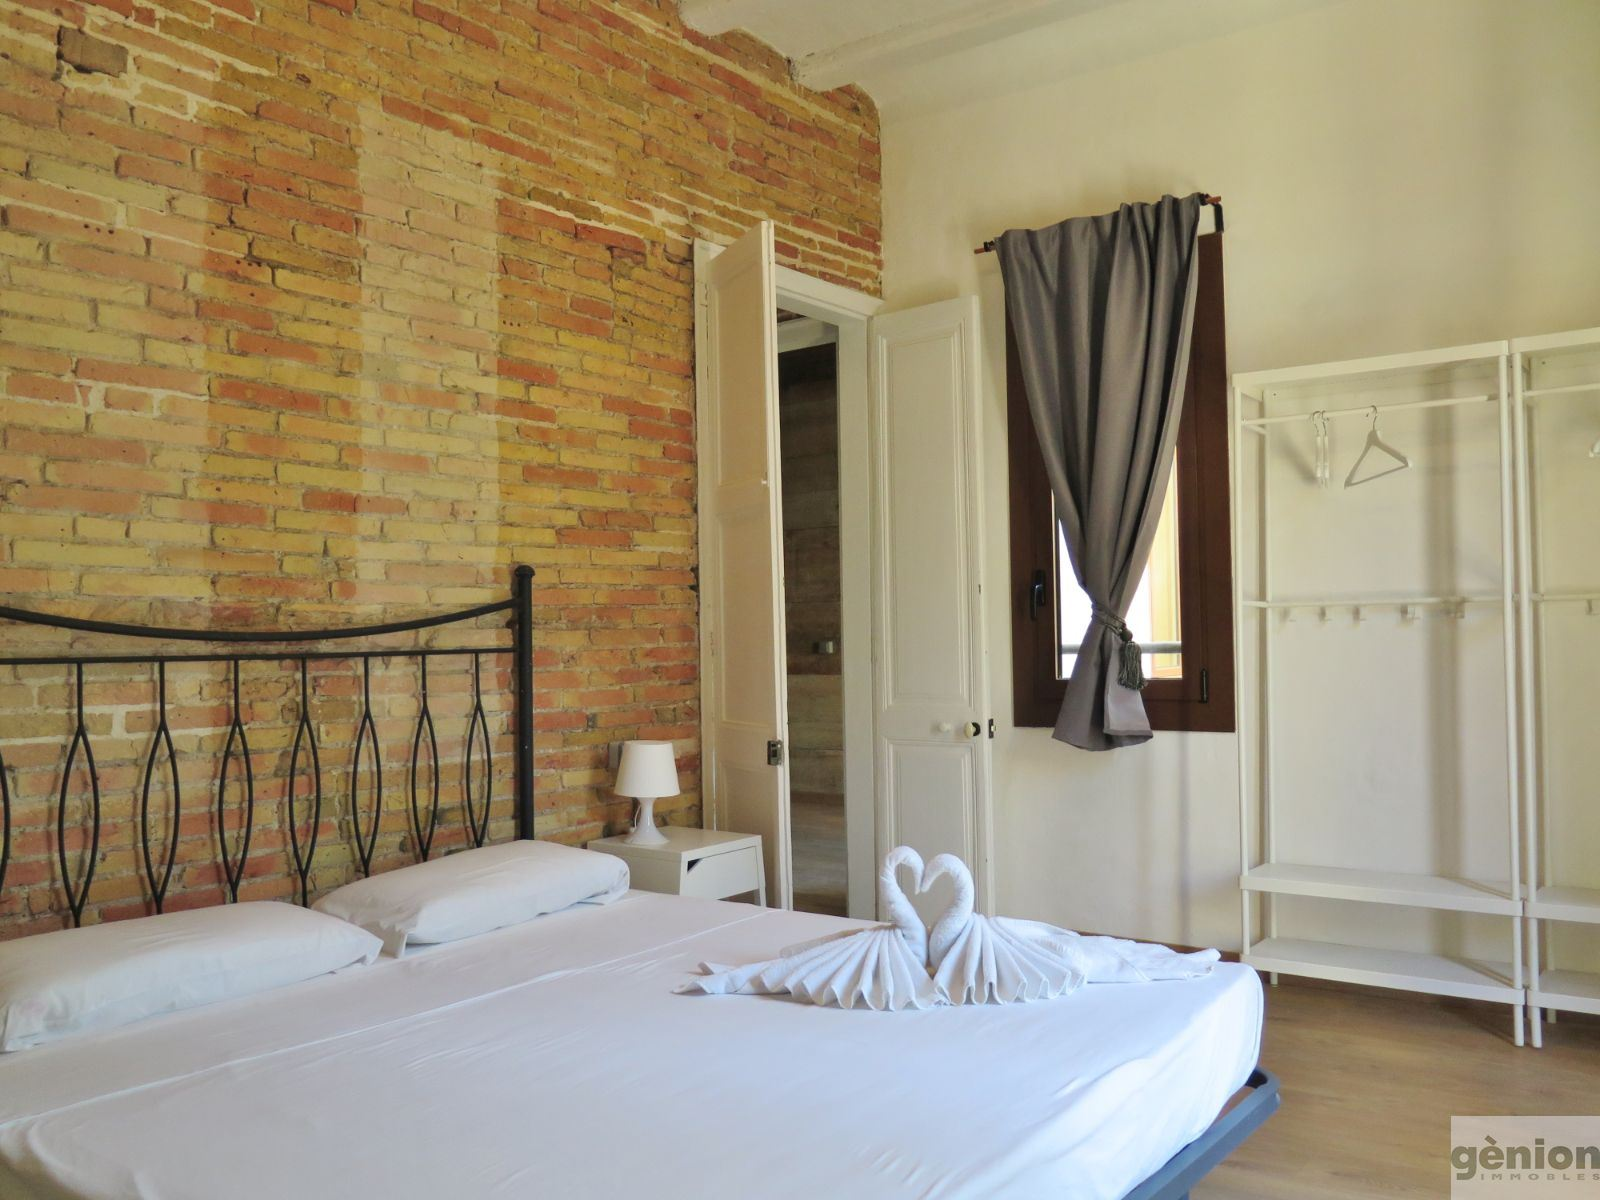 128 m² APARTMENT IN GIRONA'S BARRI VELL (OLD QUARTER). FULLY REFURBISHED HISTORIC BUILDING